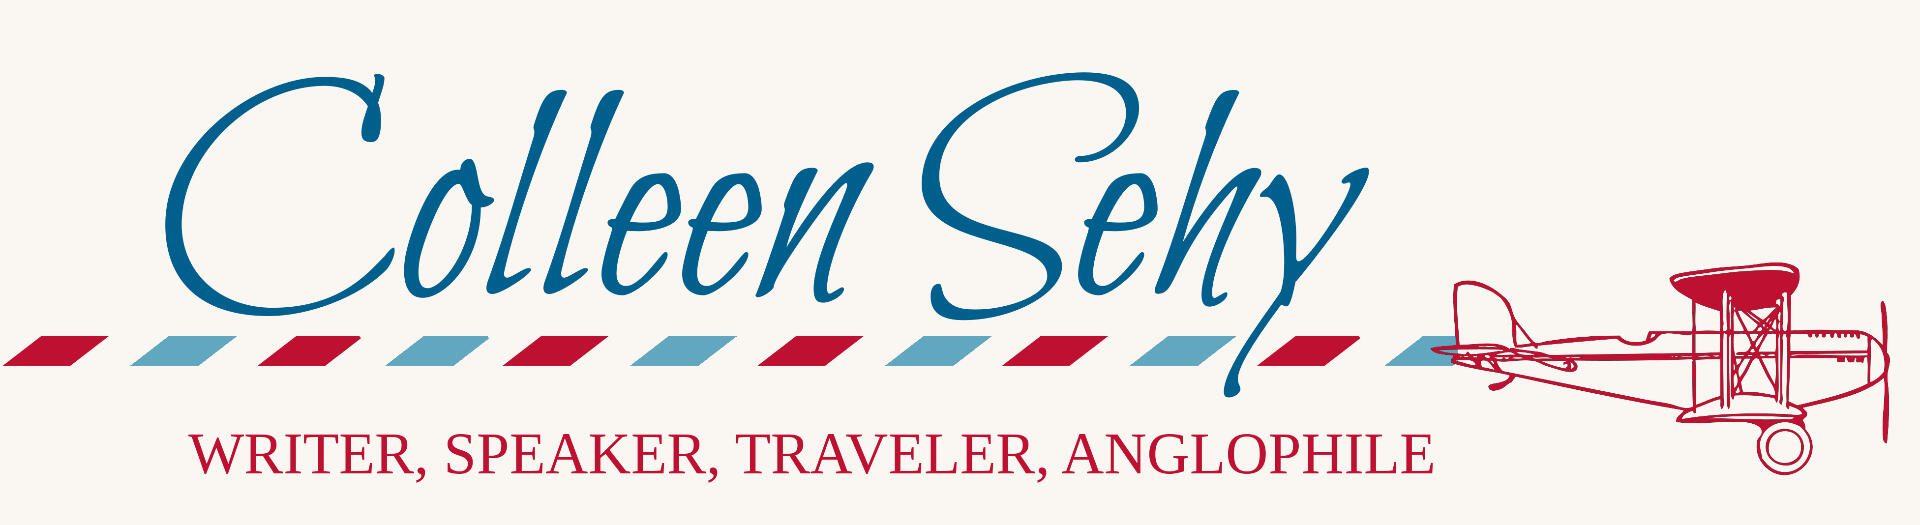 Colleen Sehy: writer, speaker, traveler, Anglophile in America.